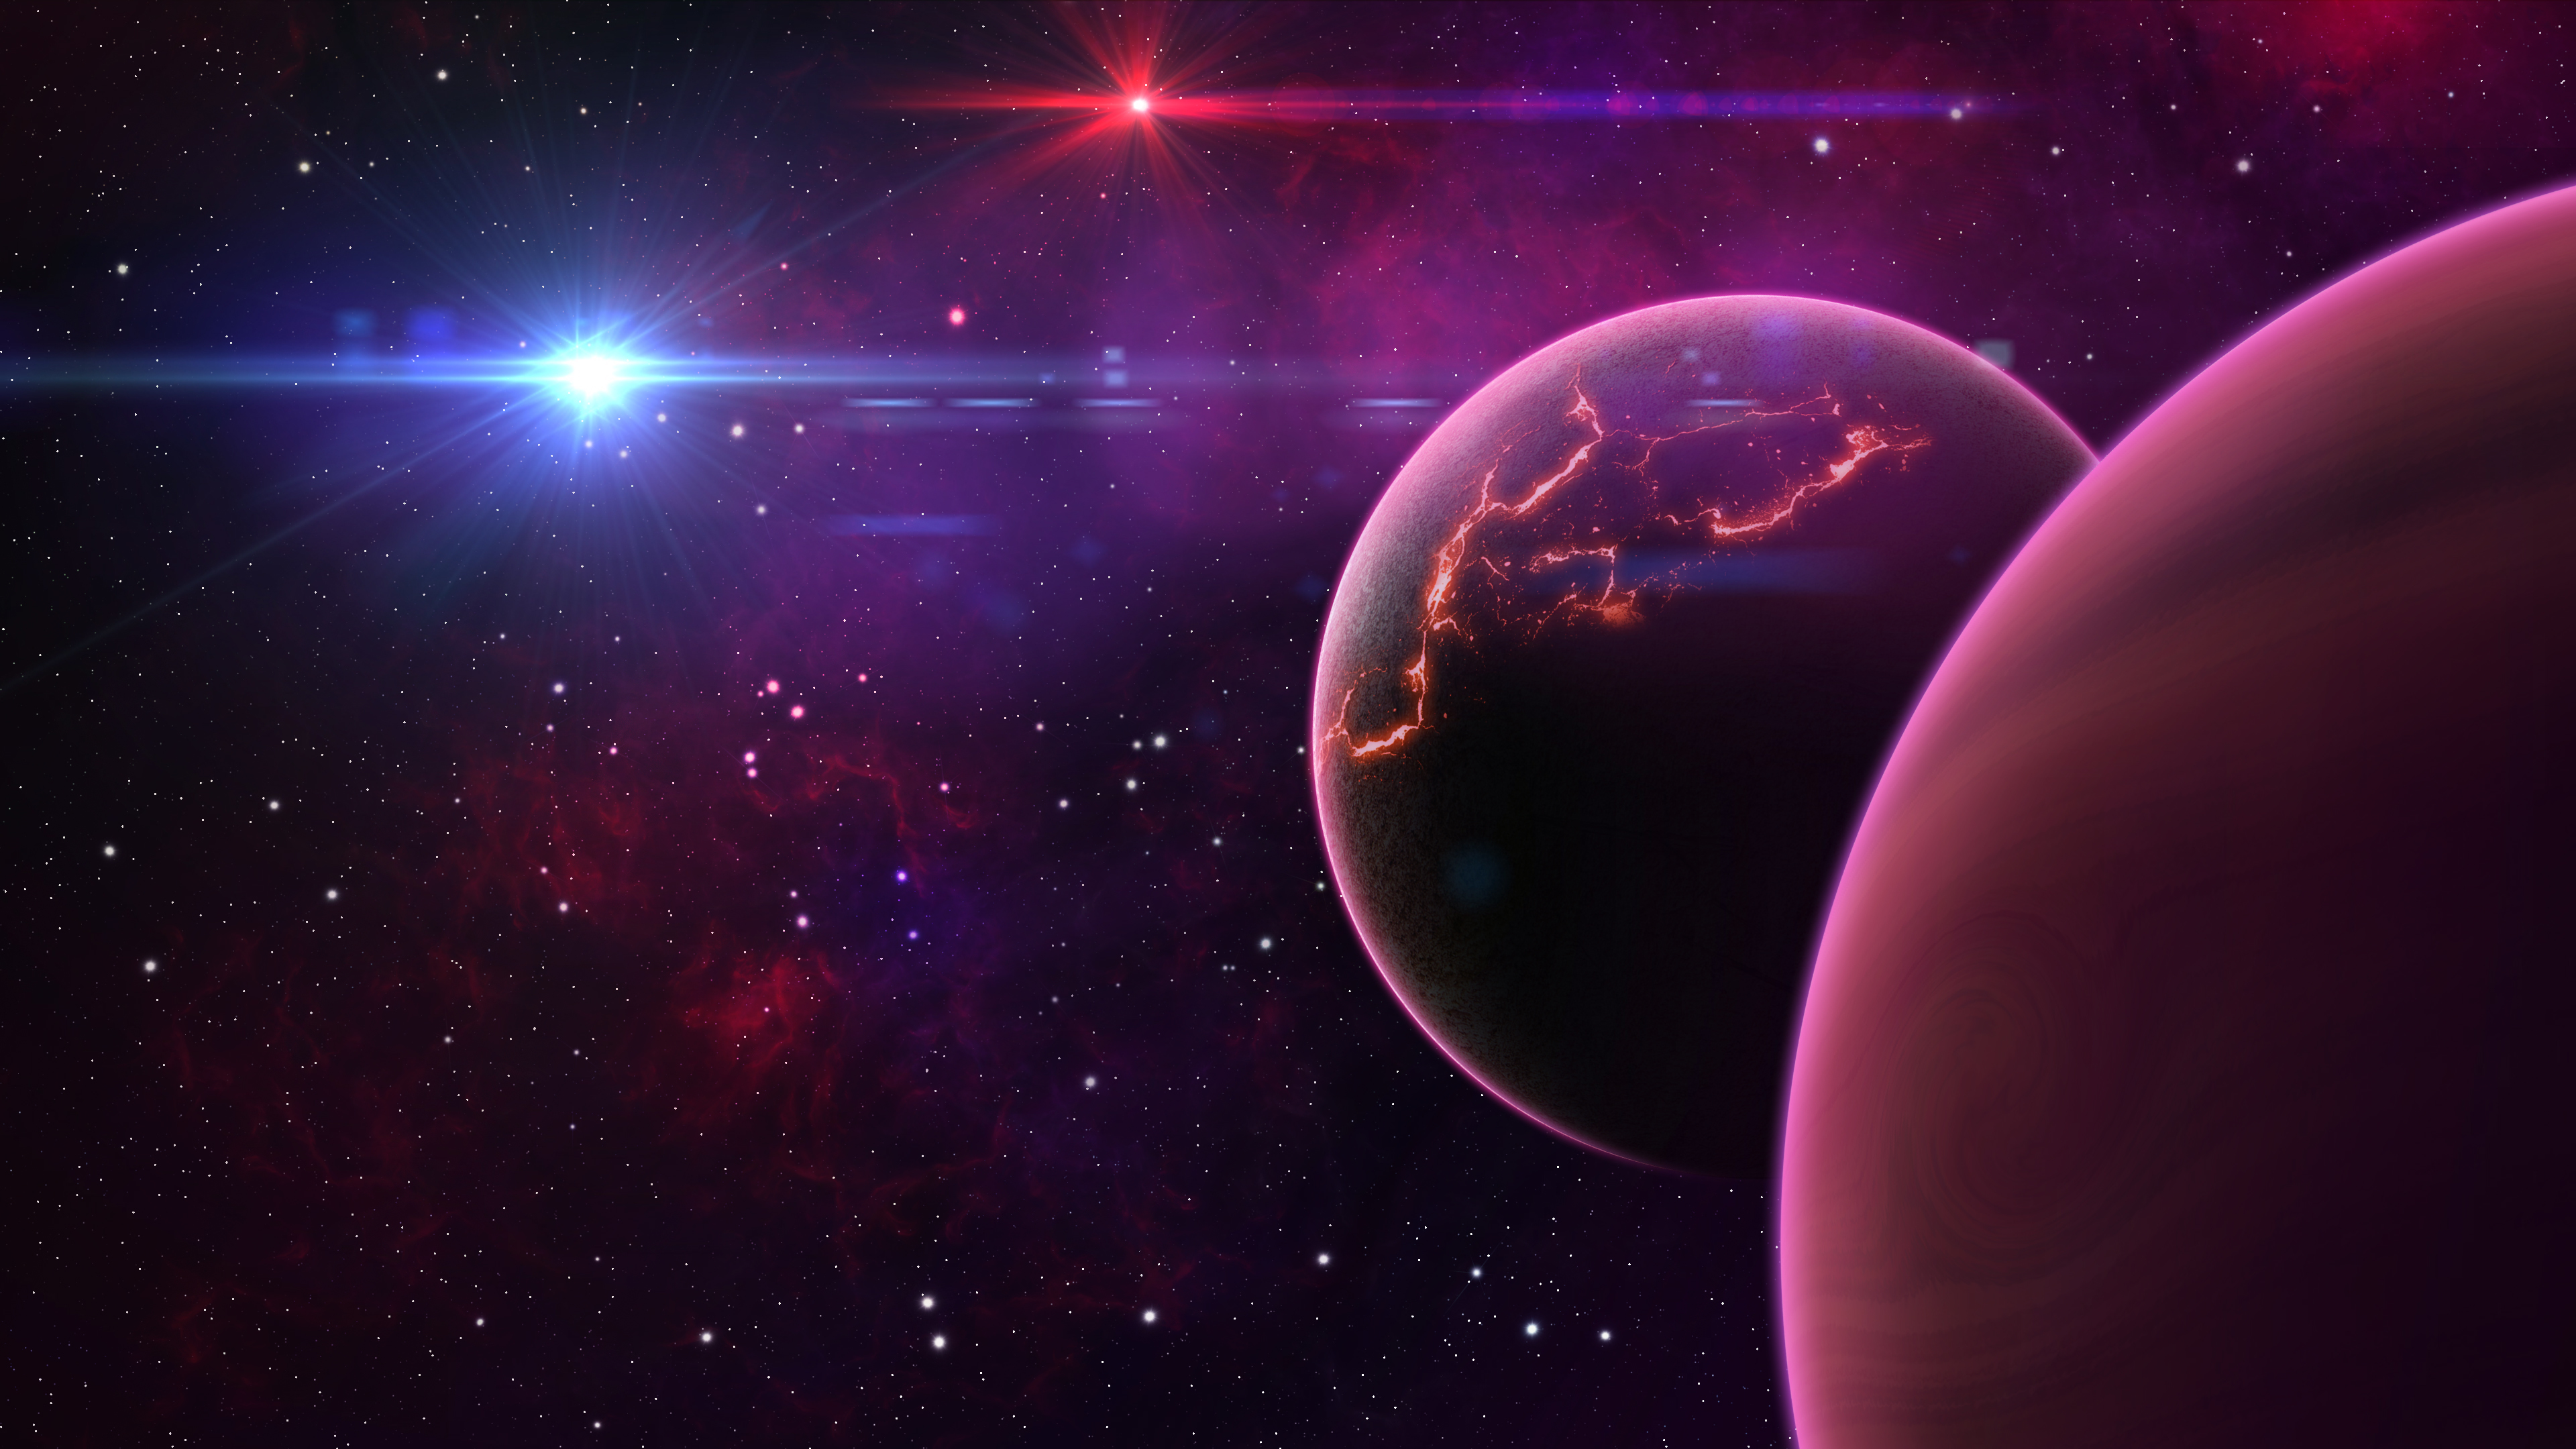 Wallpapers del universo 4k im genes taringa for Wallpapers 3d animados para pc